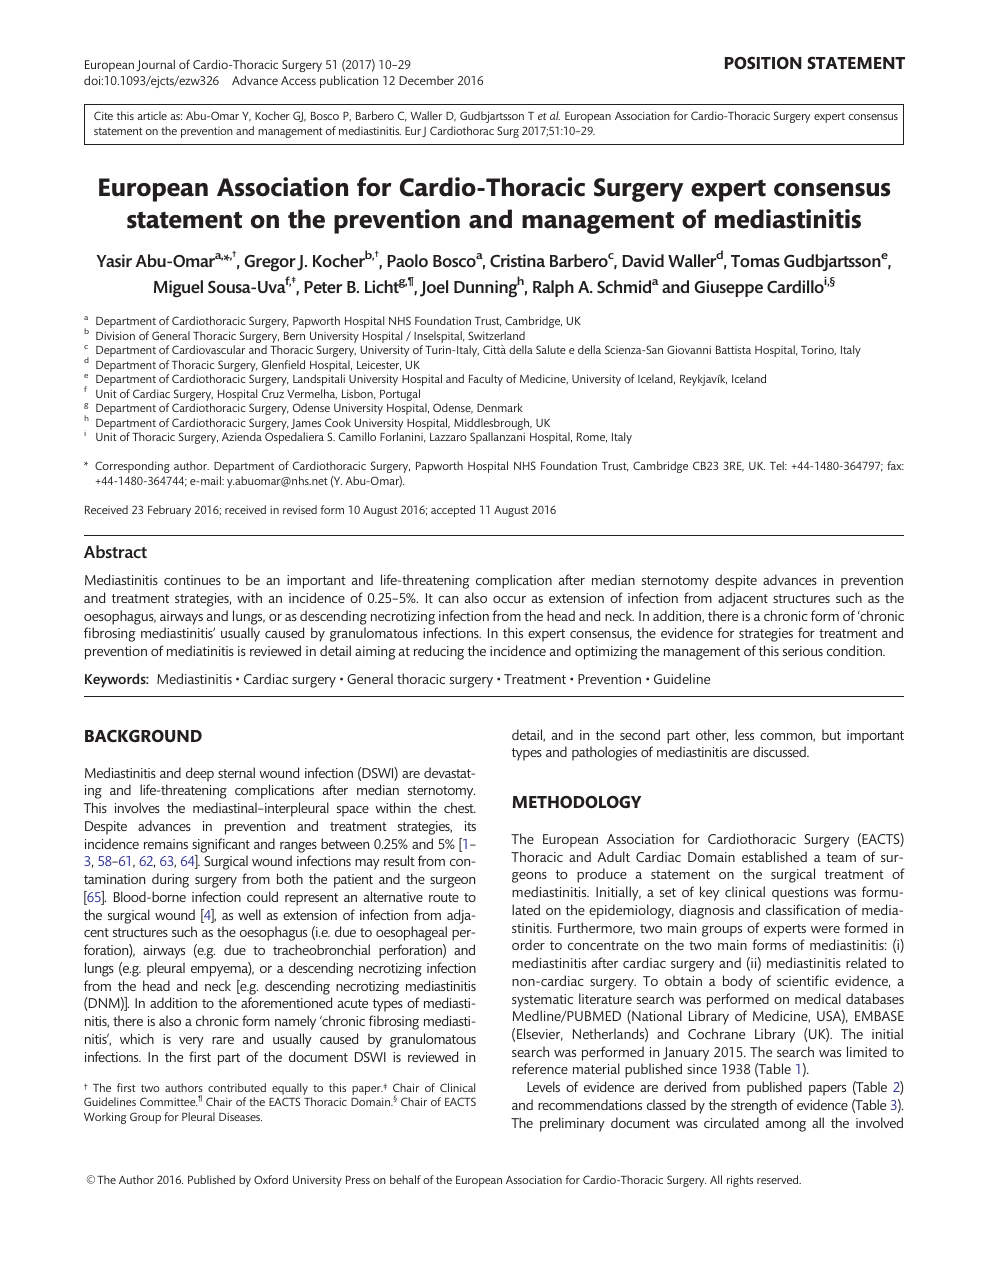 European Association For Cardio Thoracic Surgery Expert Consensus Statement On The Prevention And Management Of Mediastinitis Topic Of Research Paper In Clinical Medicine Download Scholarly Article Pdf And Read For Free On